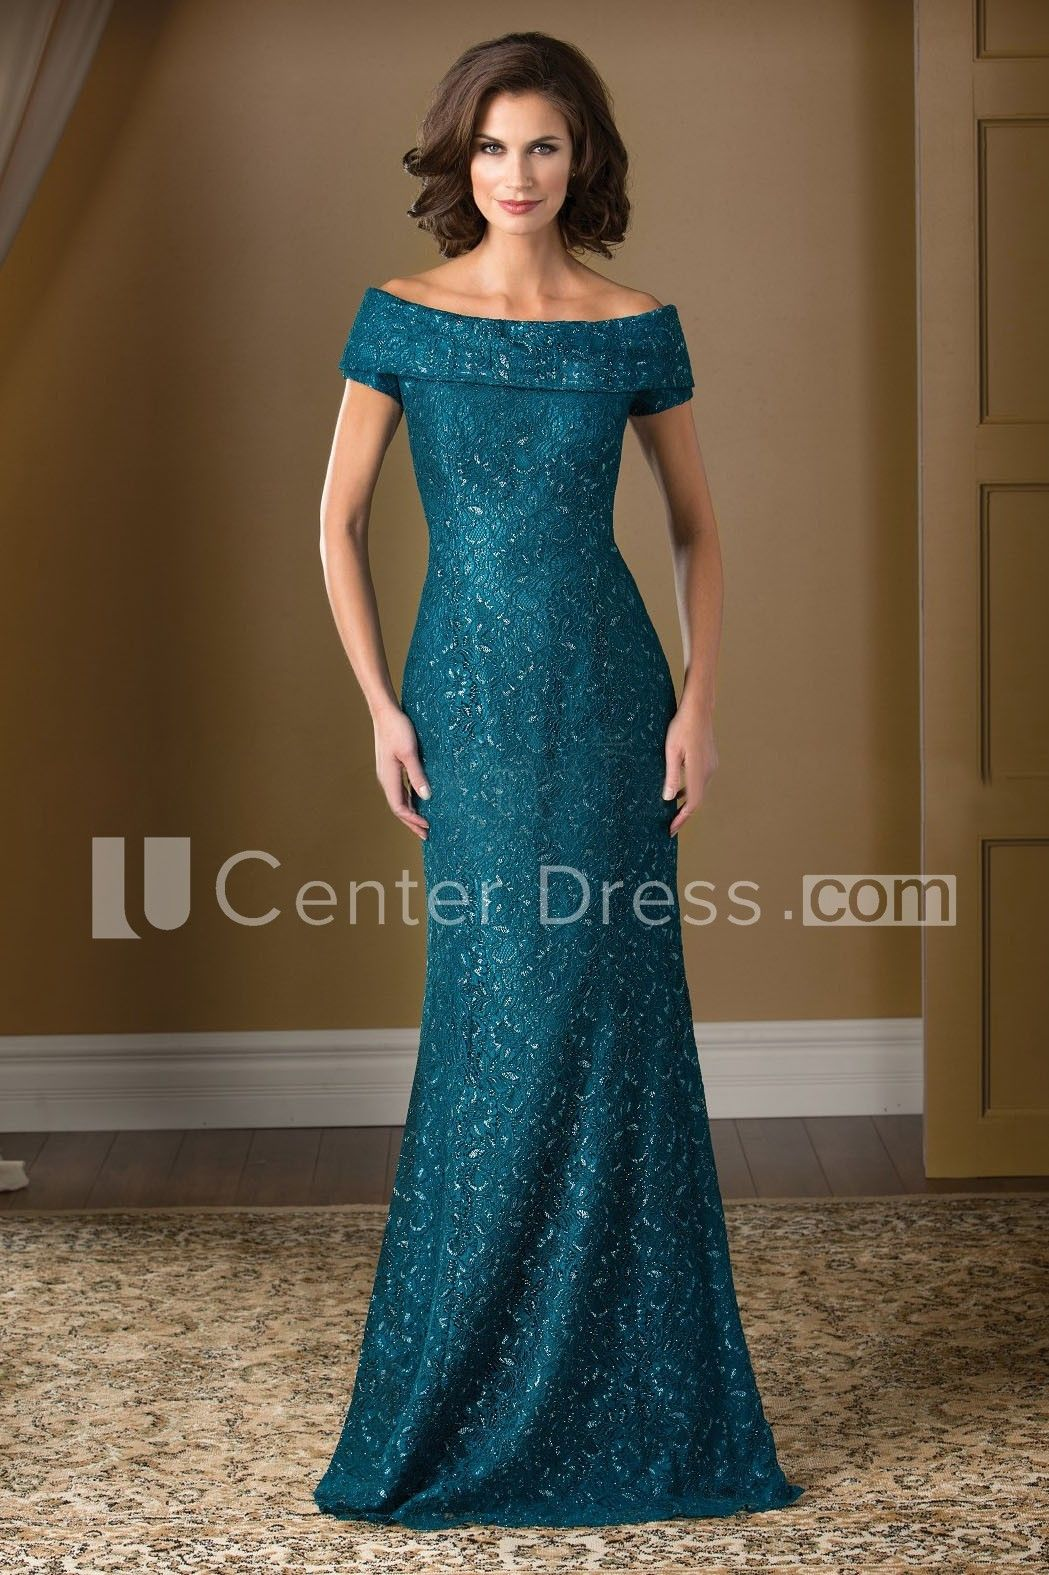 4ca7417e0d9  126.09-Chic Long Lace Mother Of The Bride Dress With Short Sleeves. http